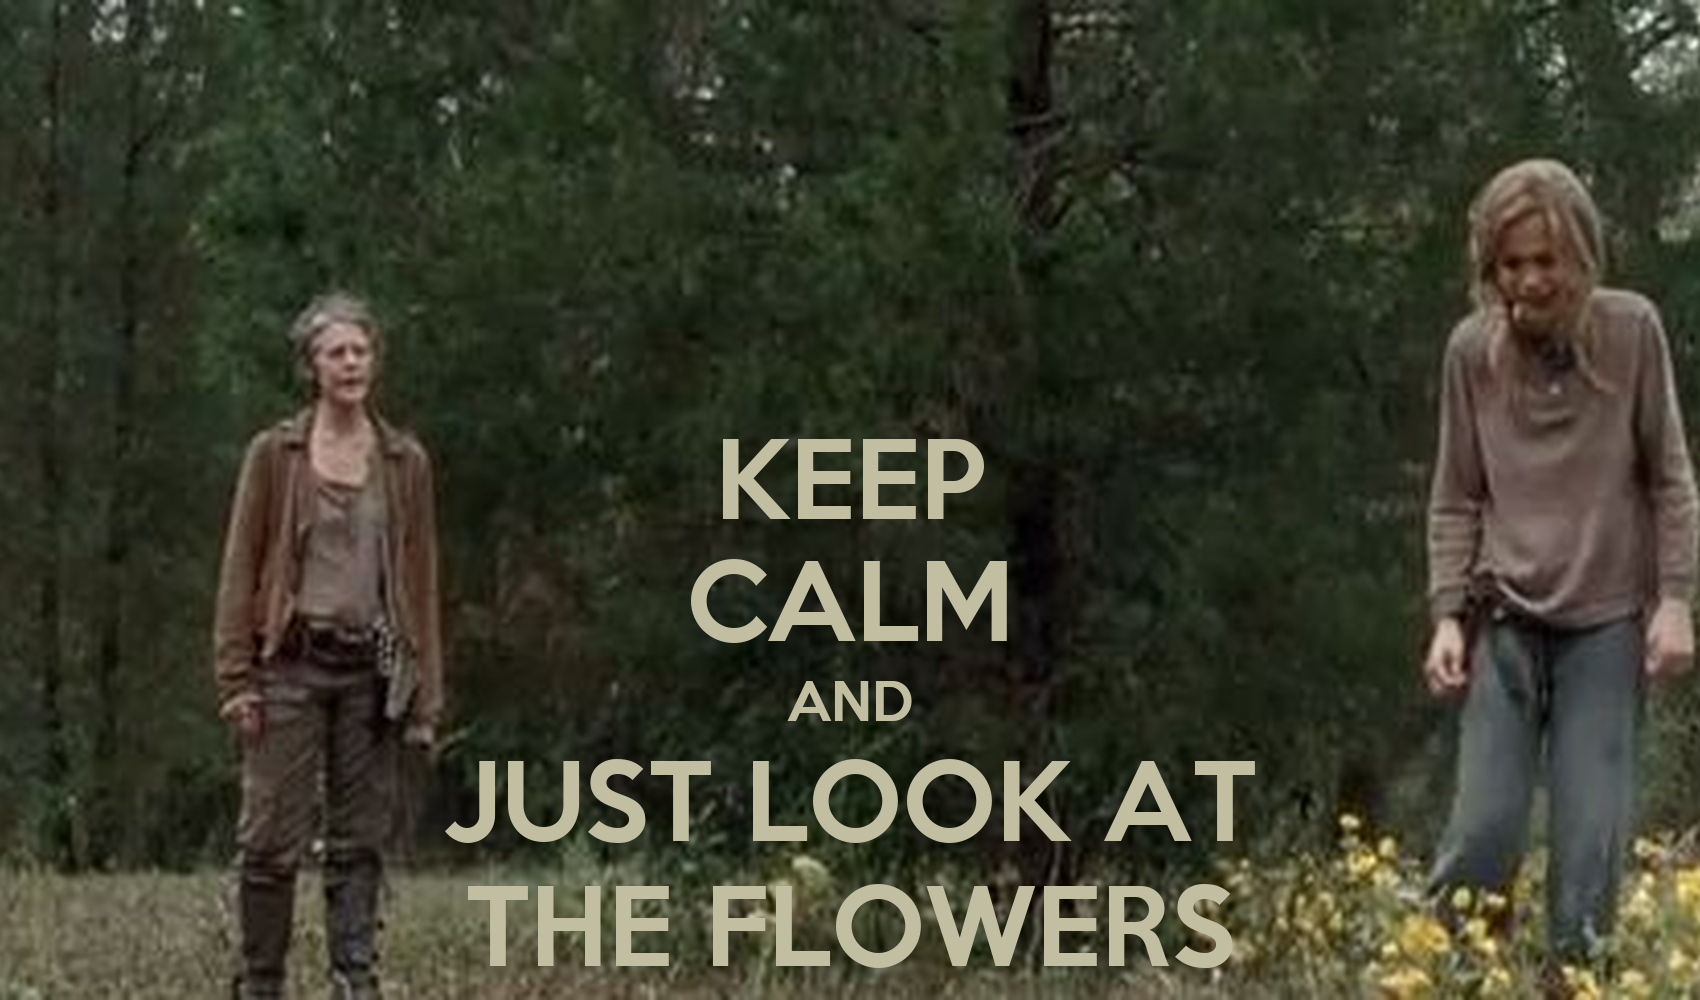 KEEP CALM AND JUST LOOK AT THE FLOWERS Poster danasharada